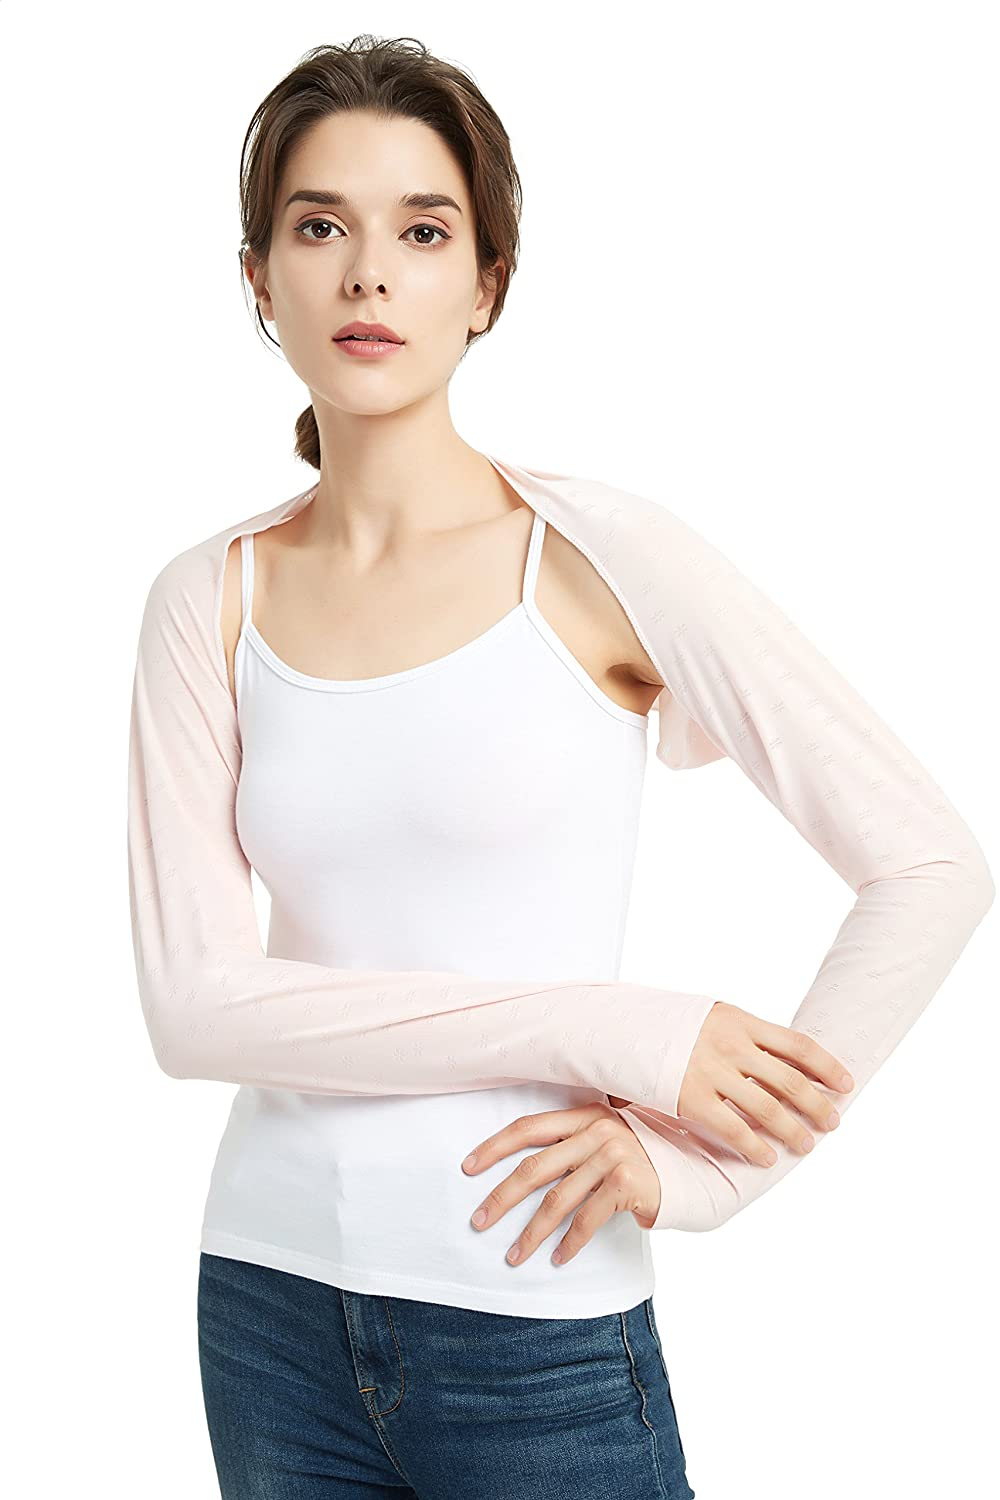 Women's Arm Sleeve Shrug Sun Protection Anti-UV Cooling Shawl for Riding, Golfing, Driving (White)